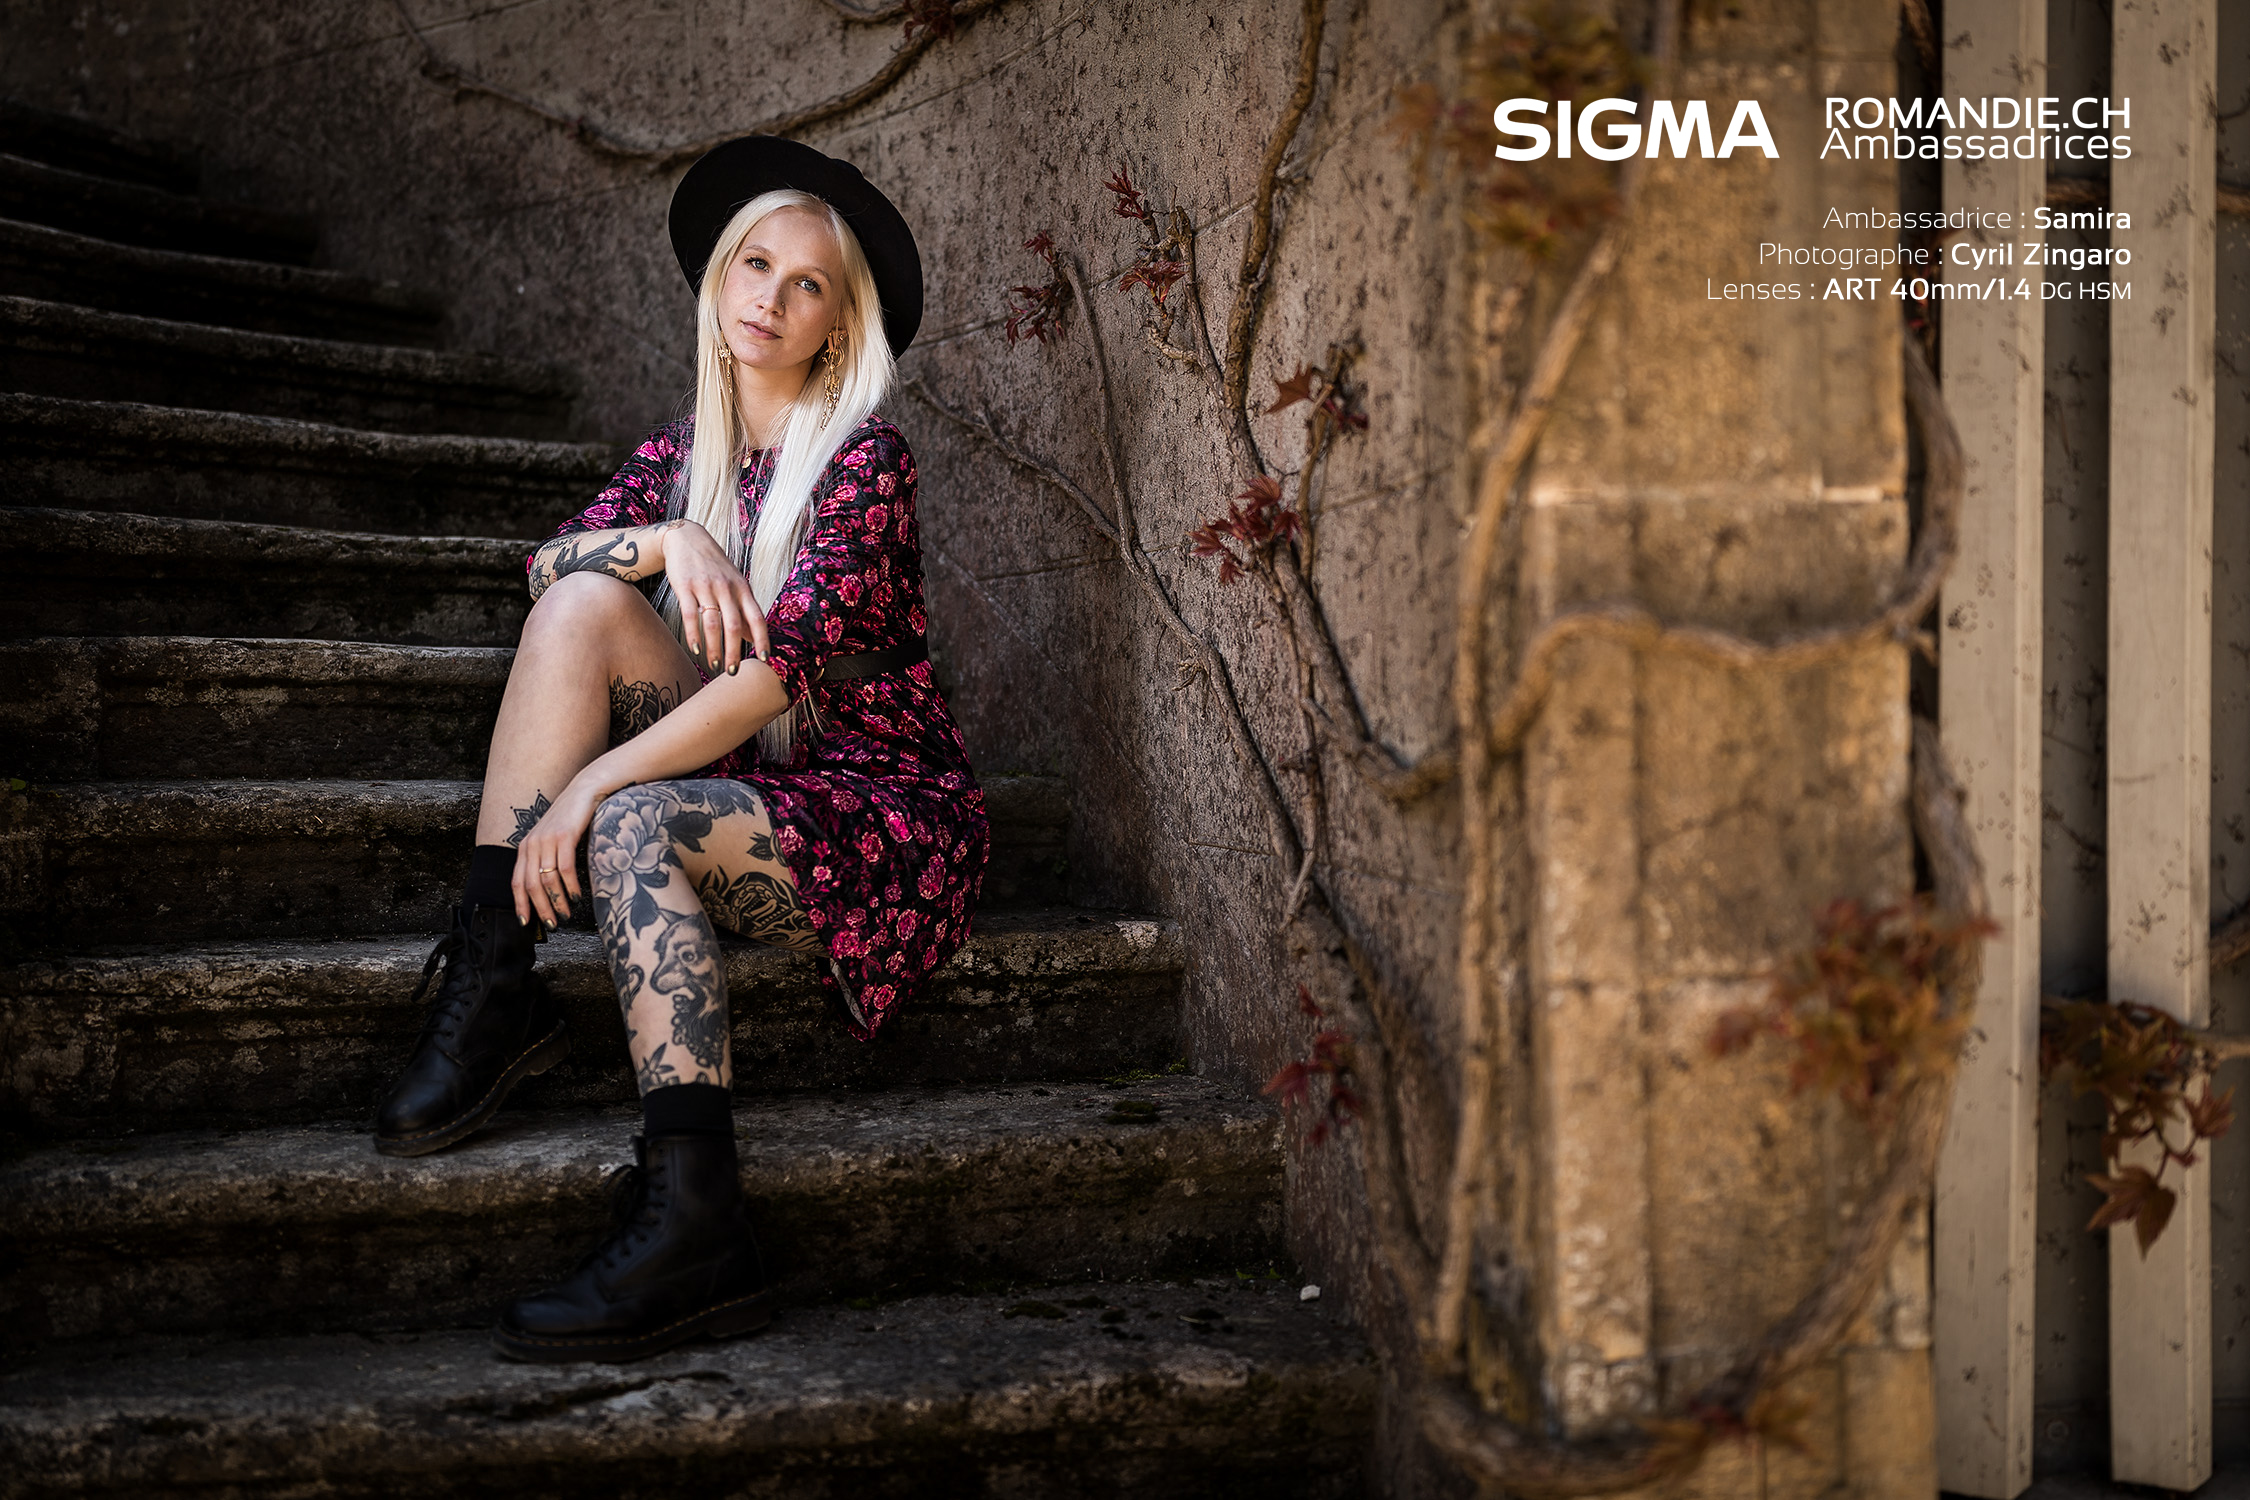 sigma_ambassadrice_2019_22HD copie